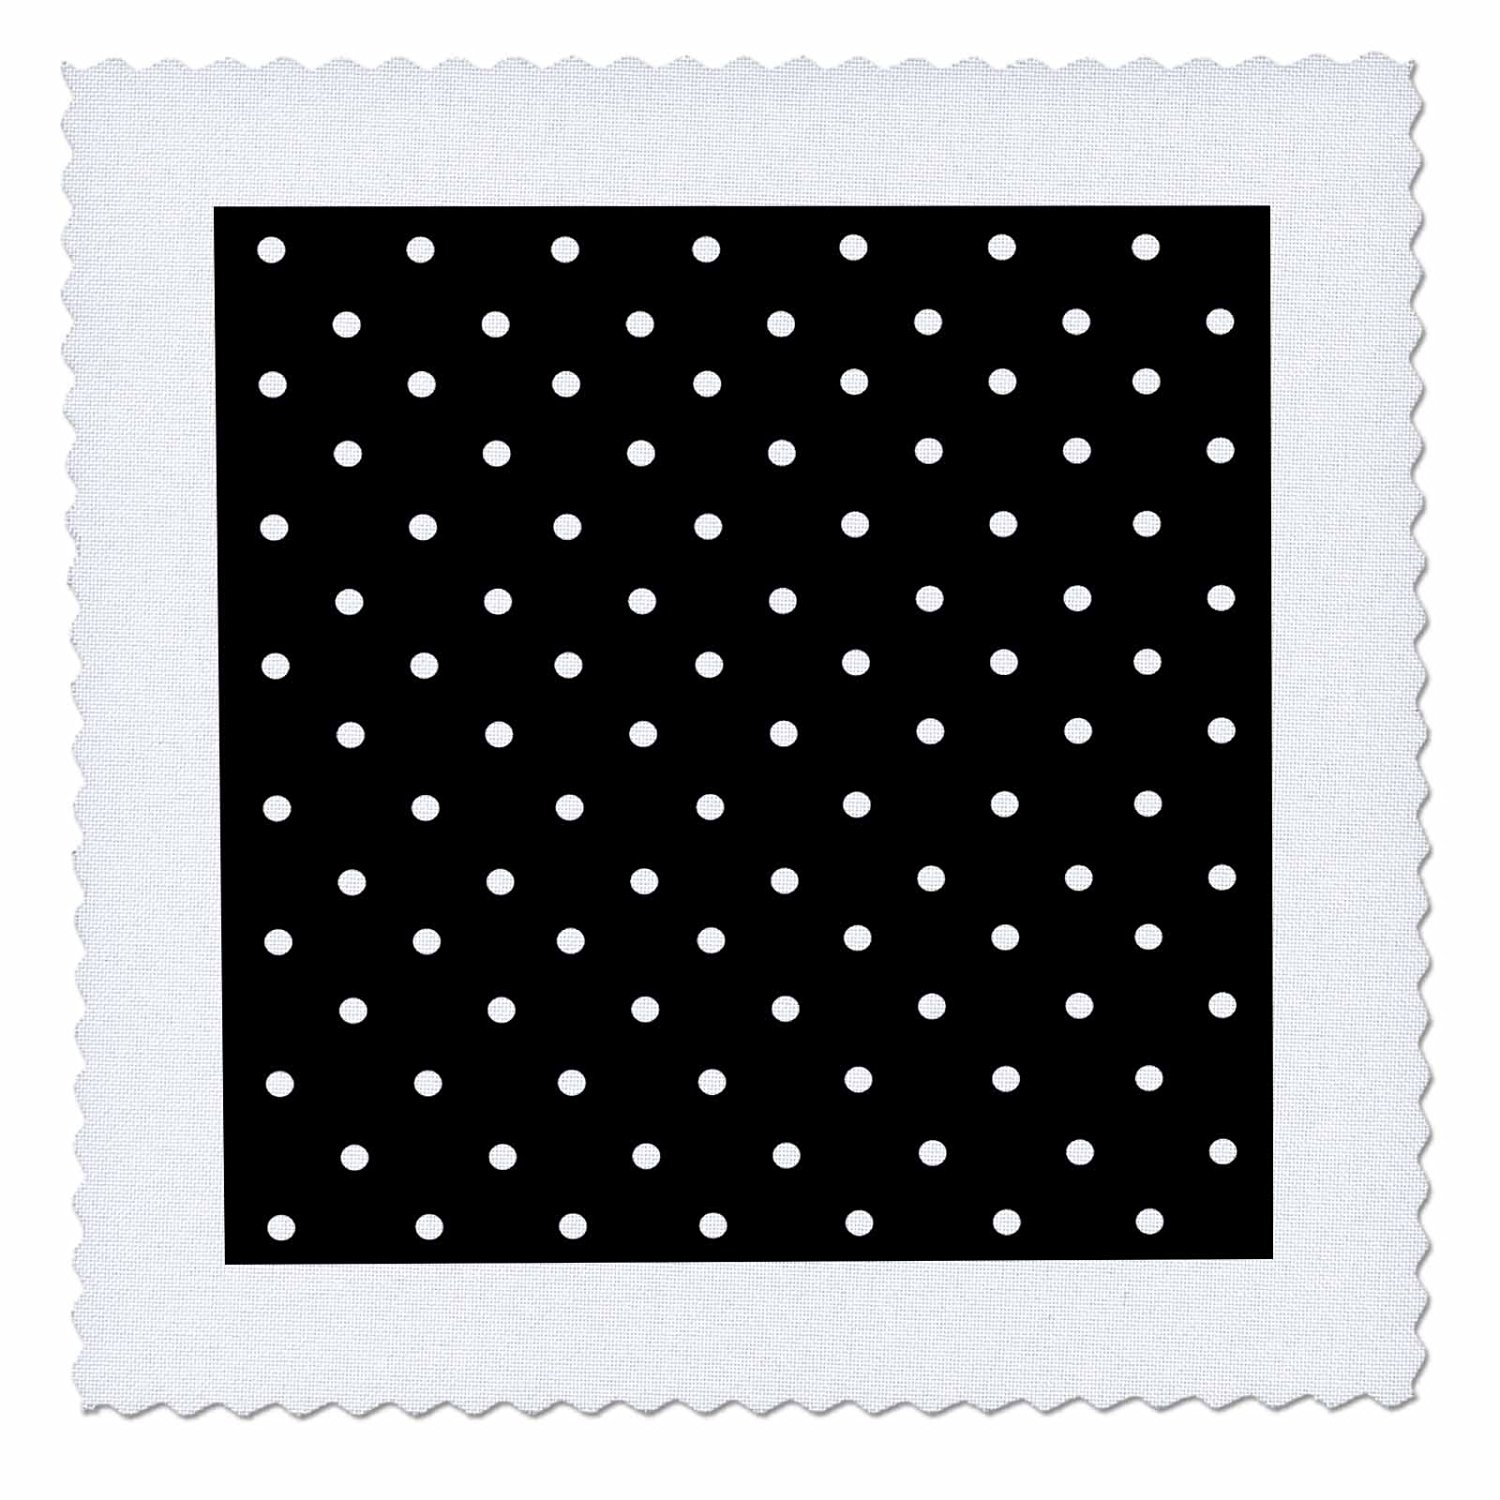 InspirationzStore Polka Dot Designs - Black and white polka dot pattern - small dots - stylish classic - classy elegant retro dotty spotty - 14x14 inch quilt square (qs_120245_5)